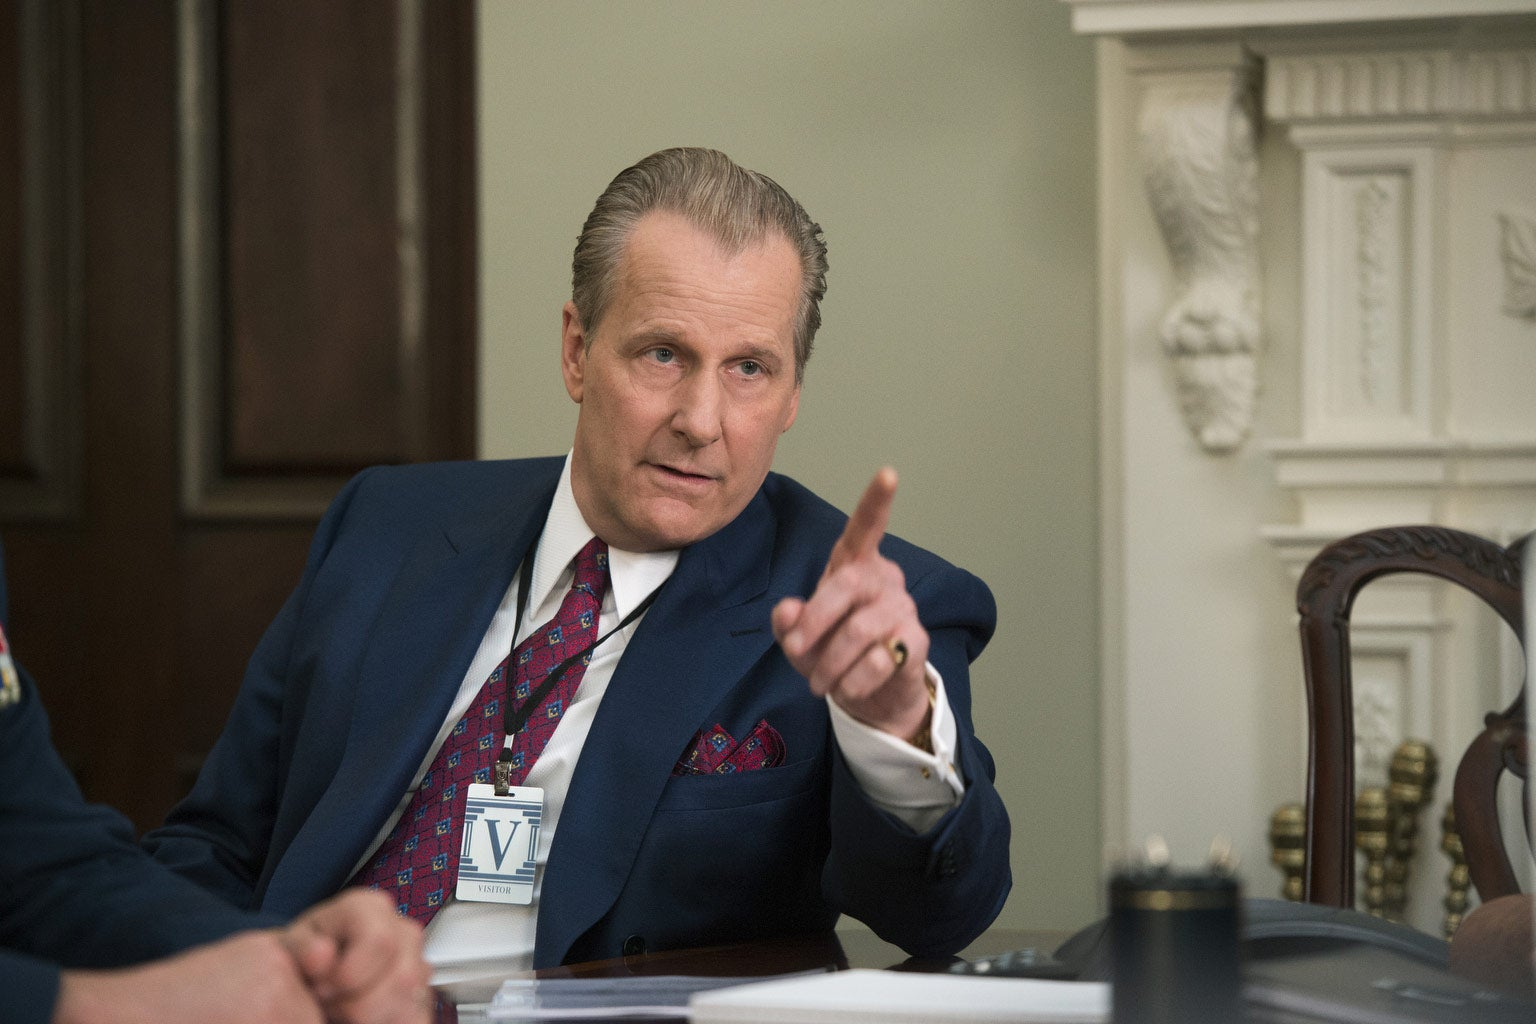 Jeff Daniels as FBI agent John O'Neill in a still image from The Looming Tower.